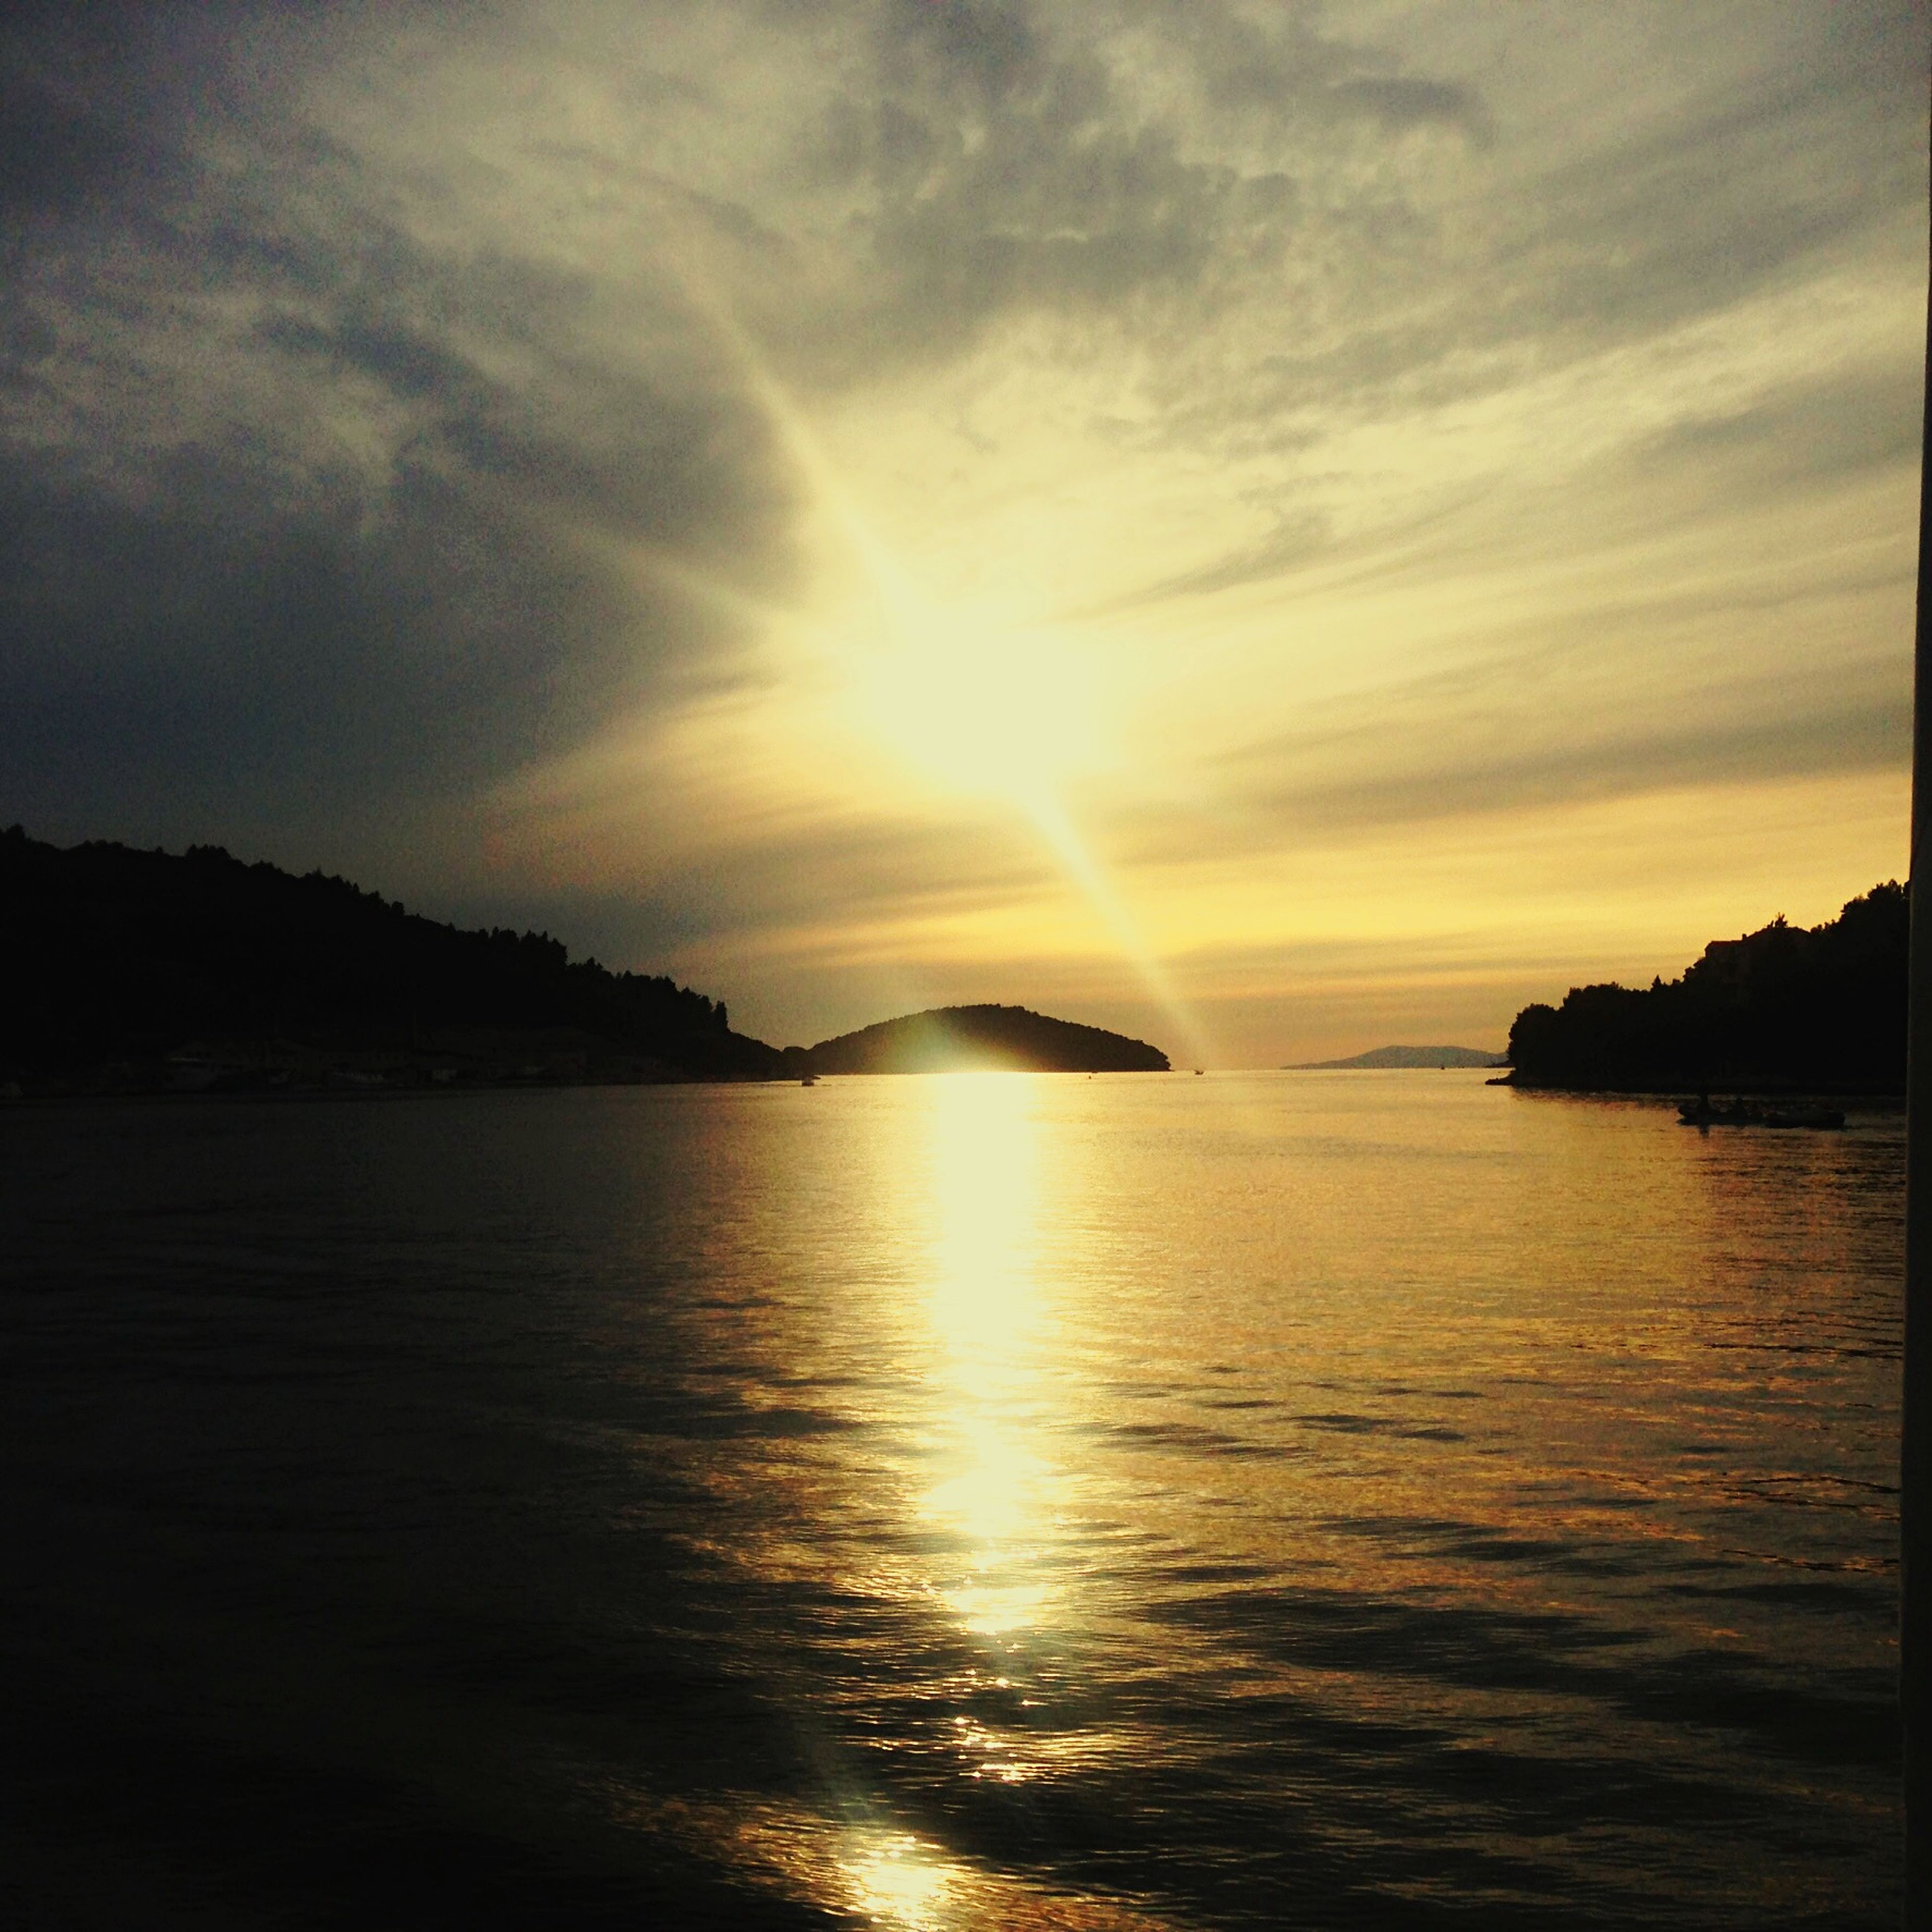 Sailing Holiday Taking Photos Sunset Sunset_collection Hello World Yacht Going Sailing